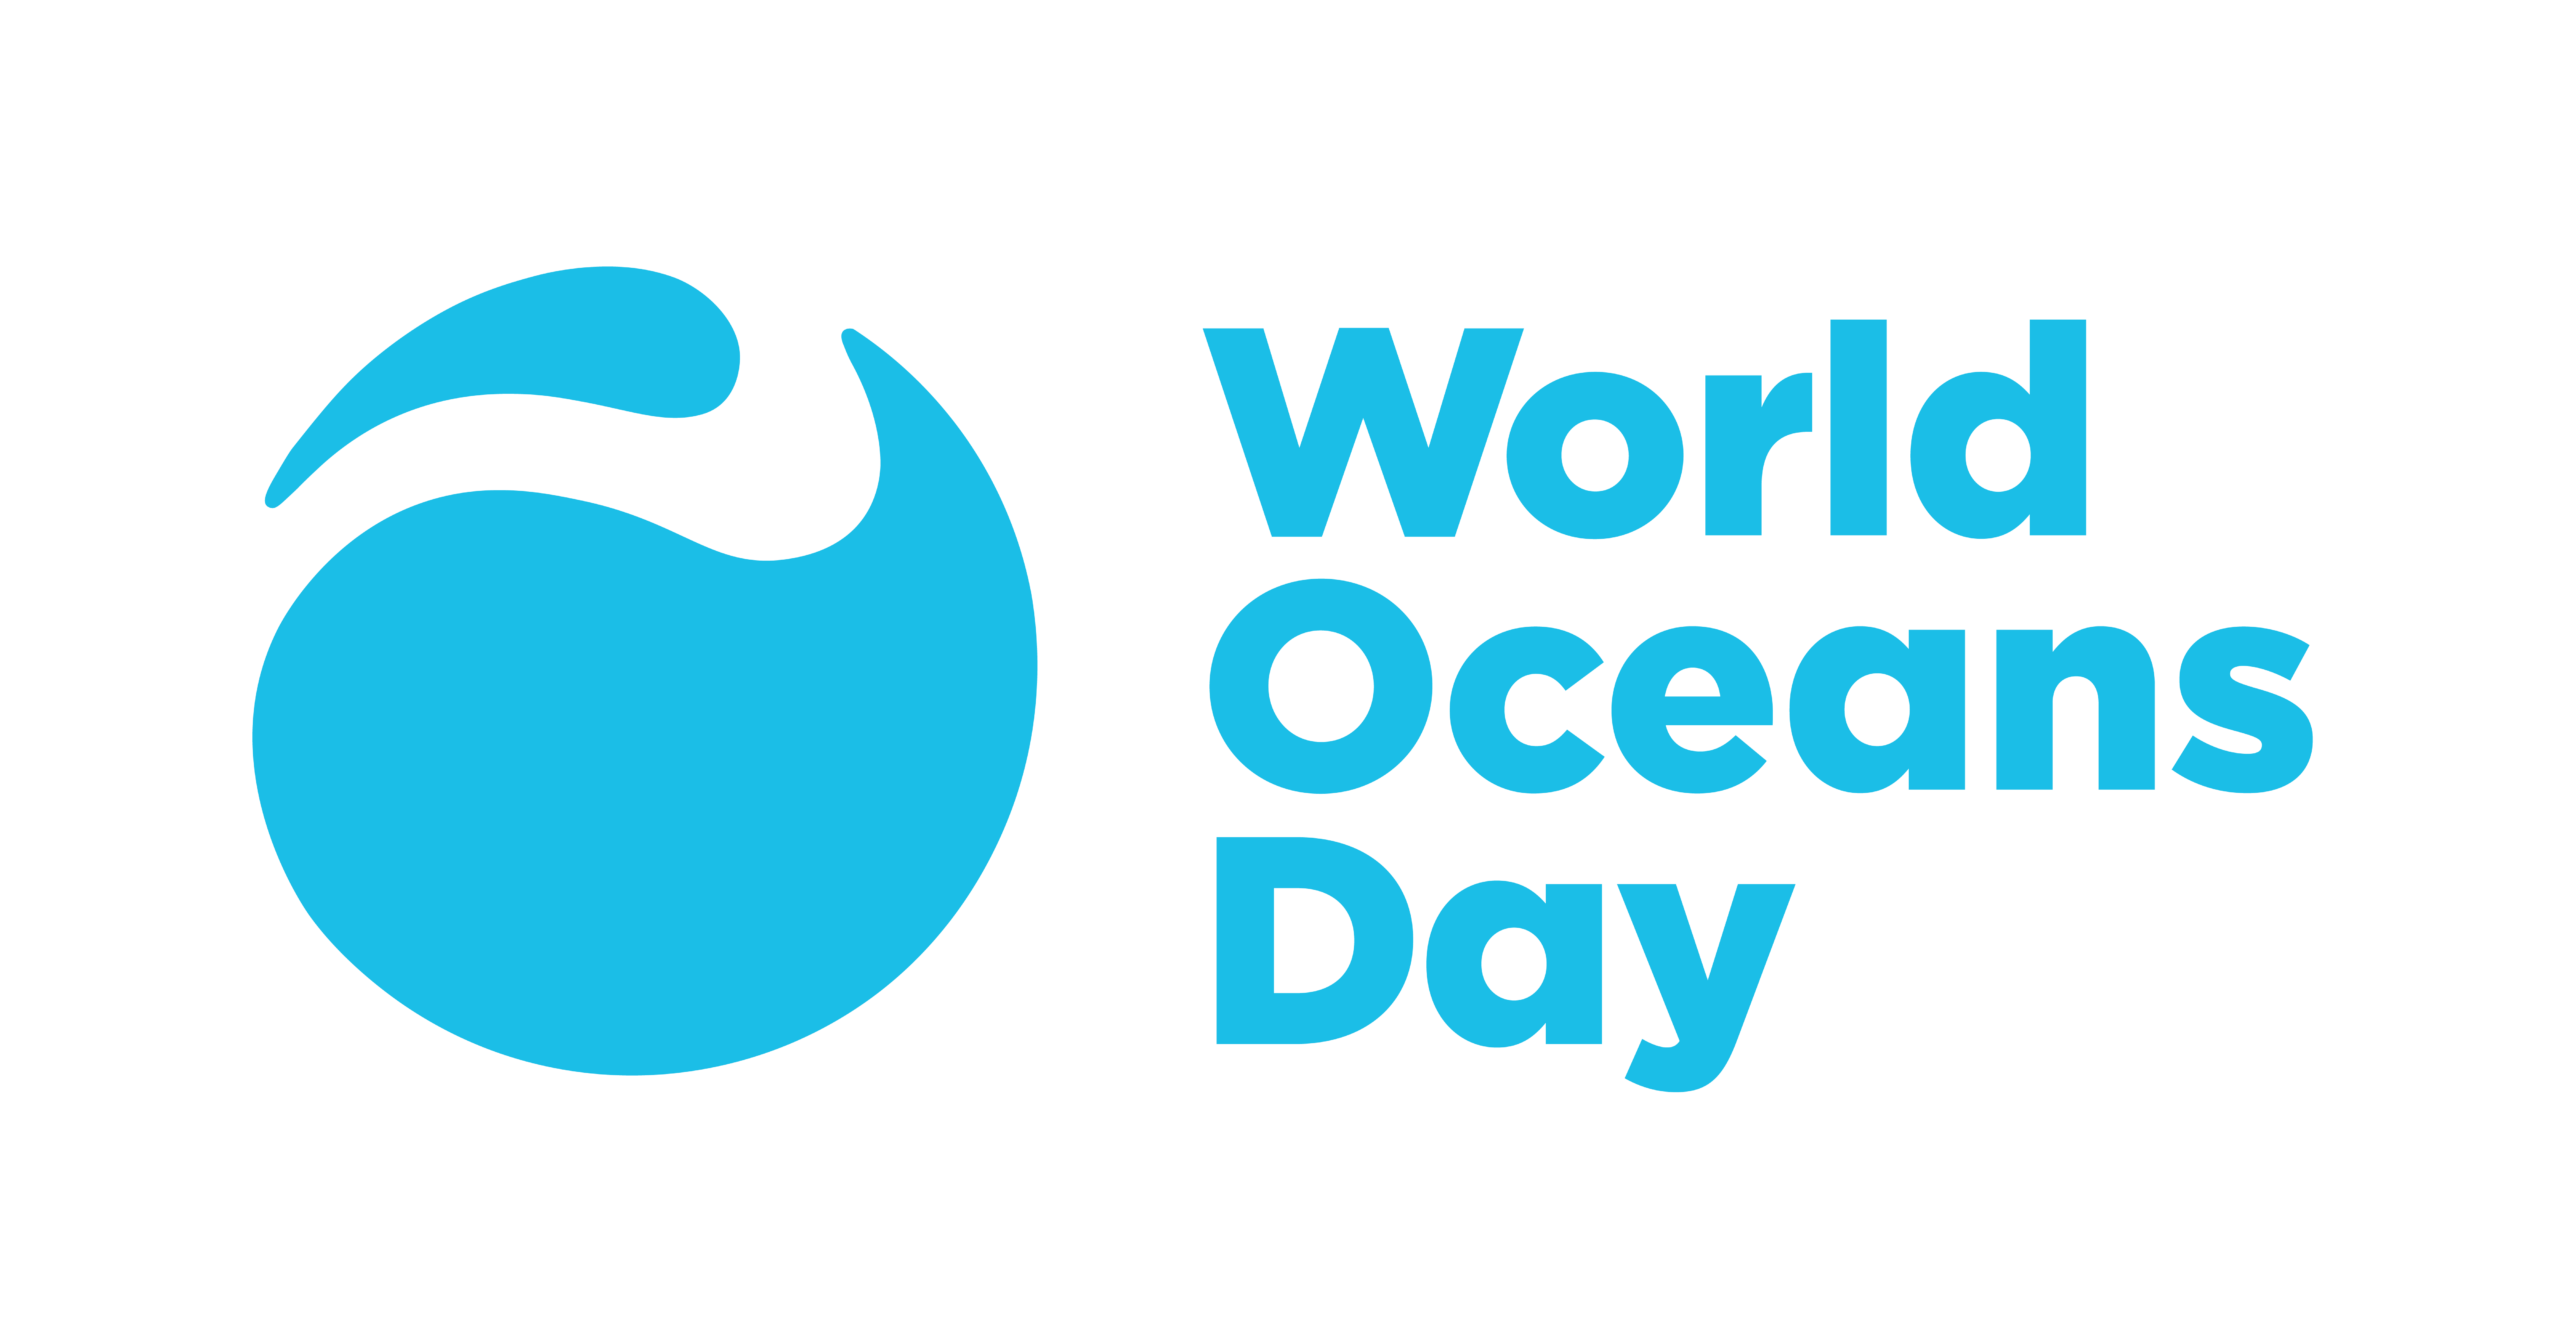 Link to World Ocean's Day event